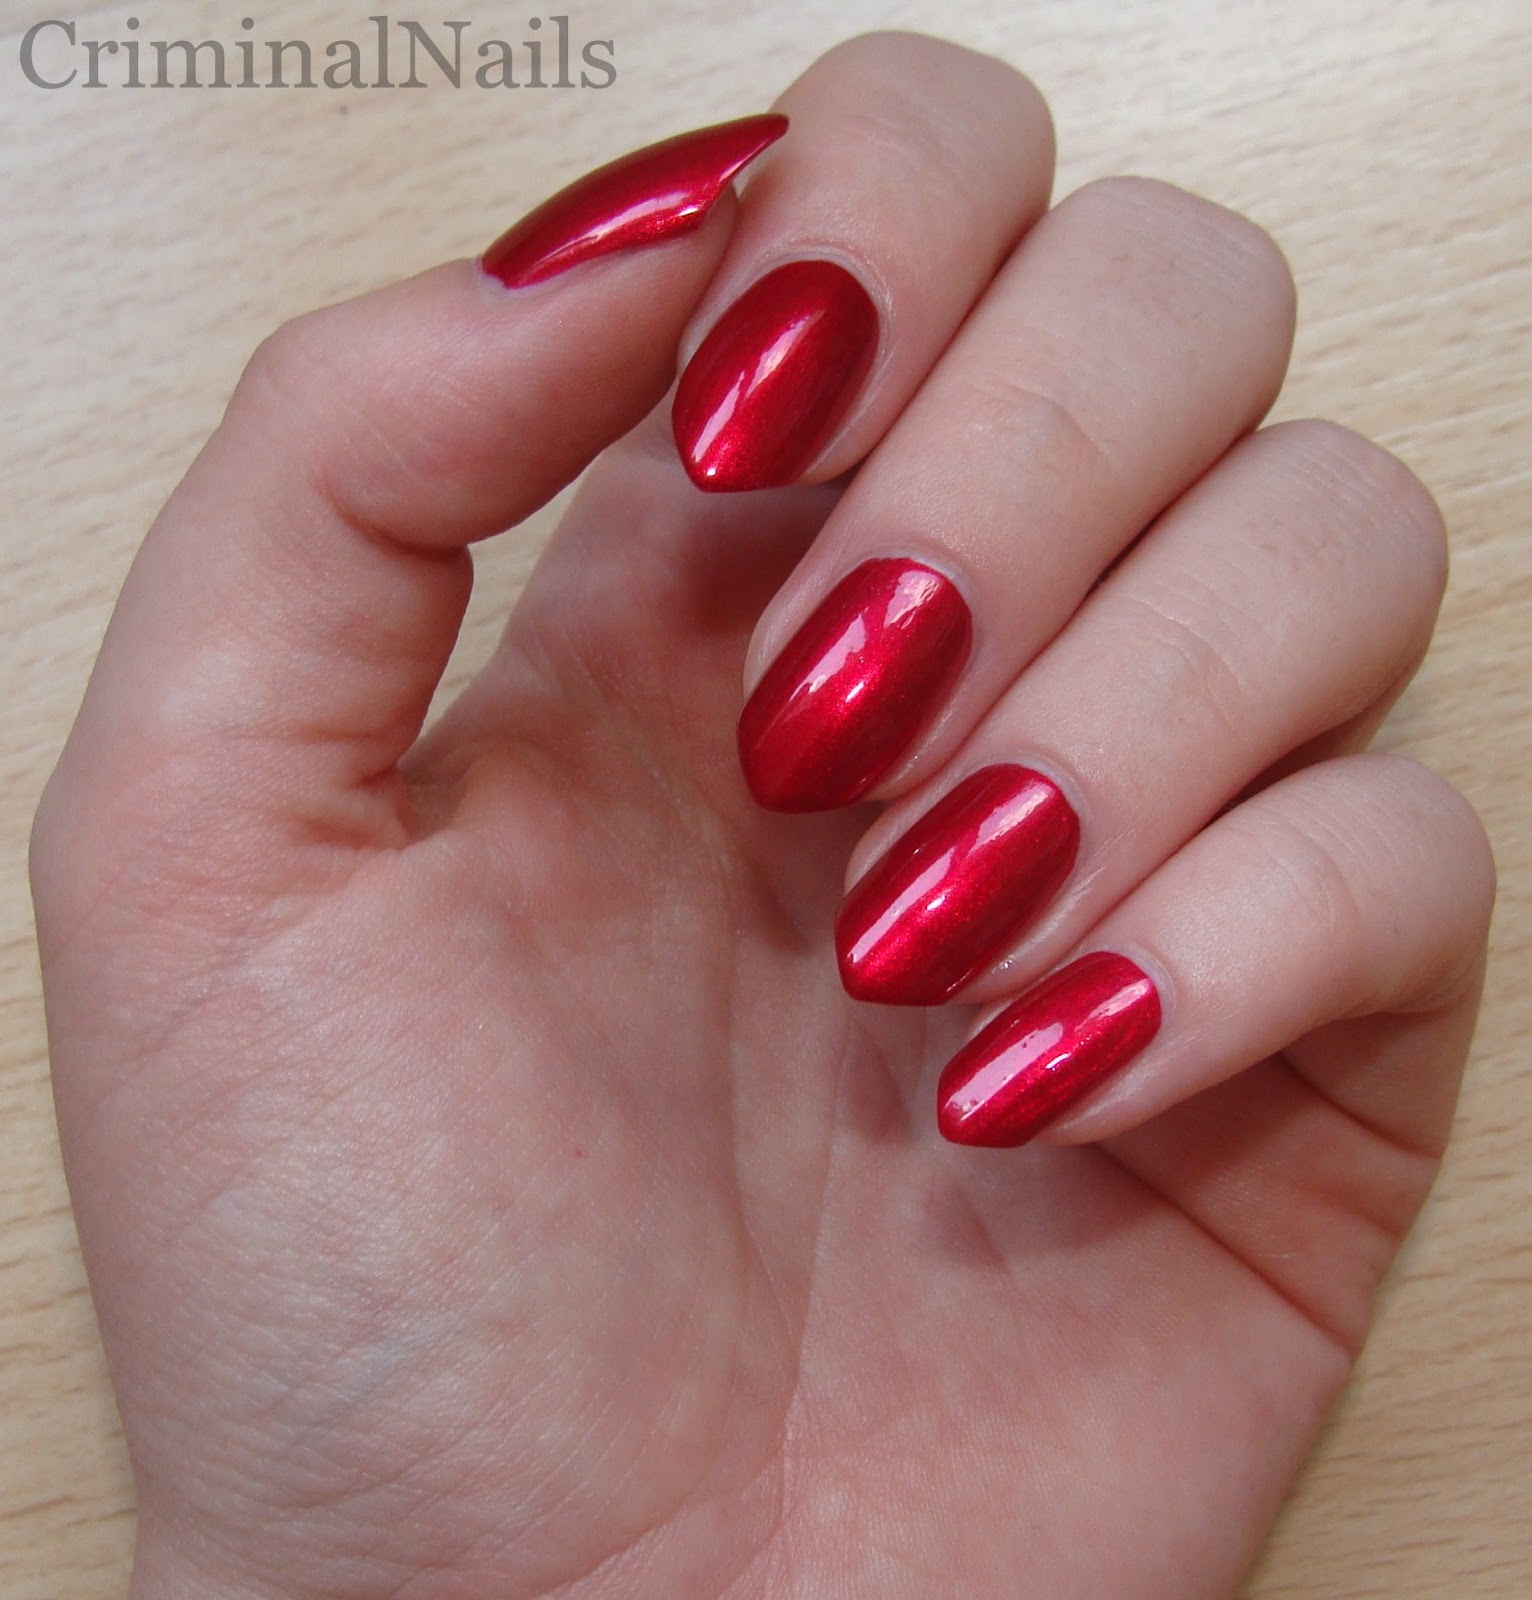 Mish Mash Challenge Least Expensive Polish Opi An Affair In Red Square